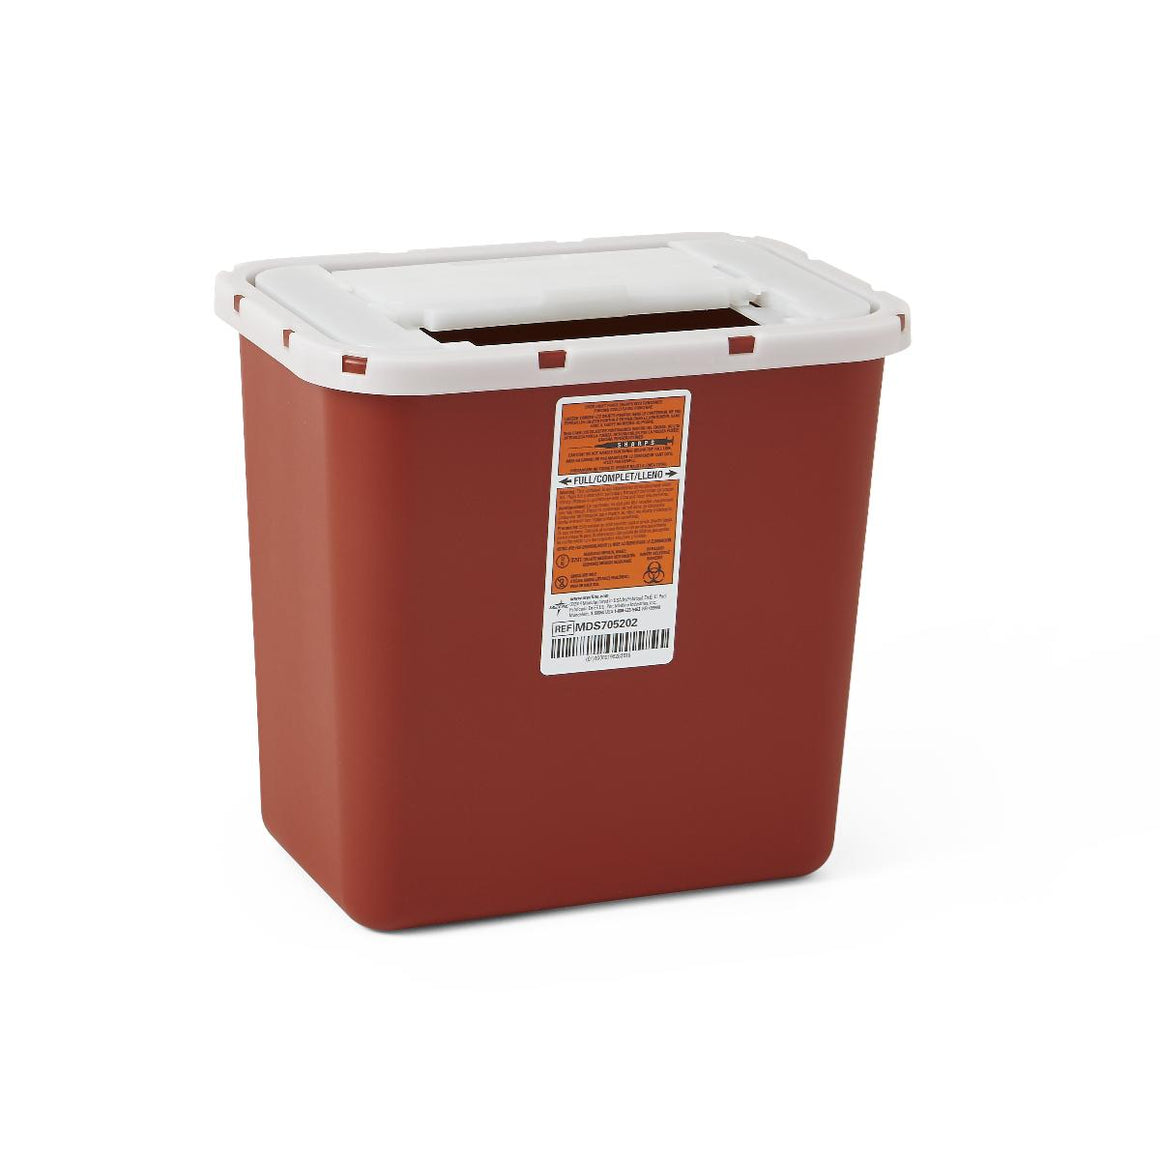 Multipurpose Sharps Containers,Red,8.000 QT, Each